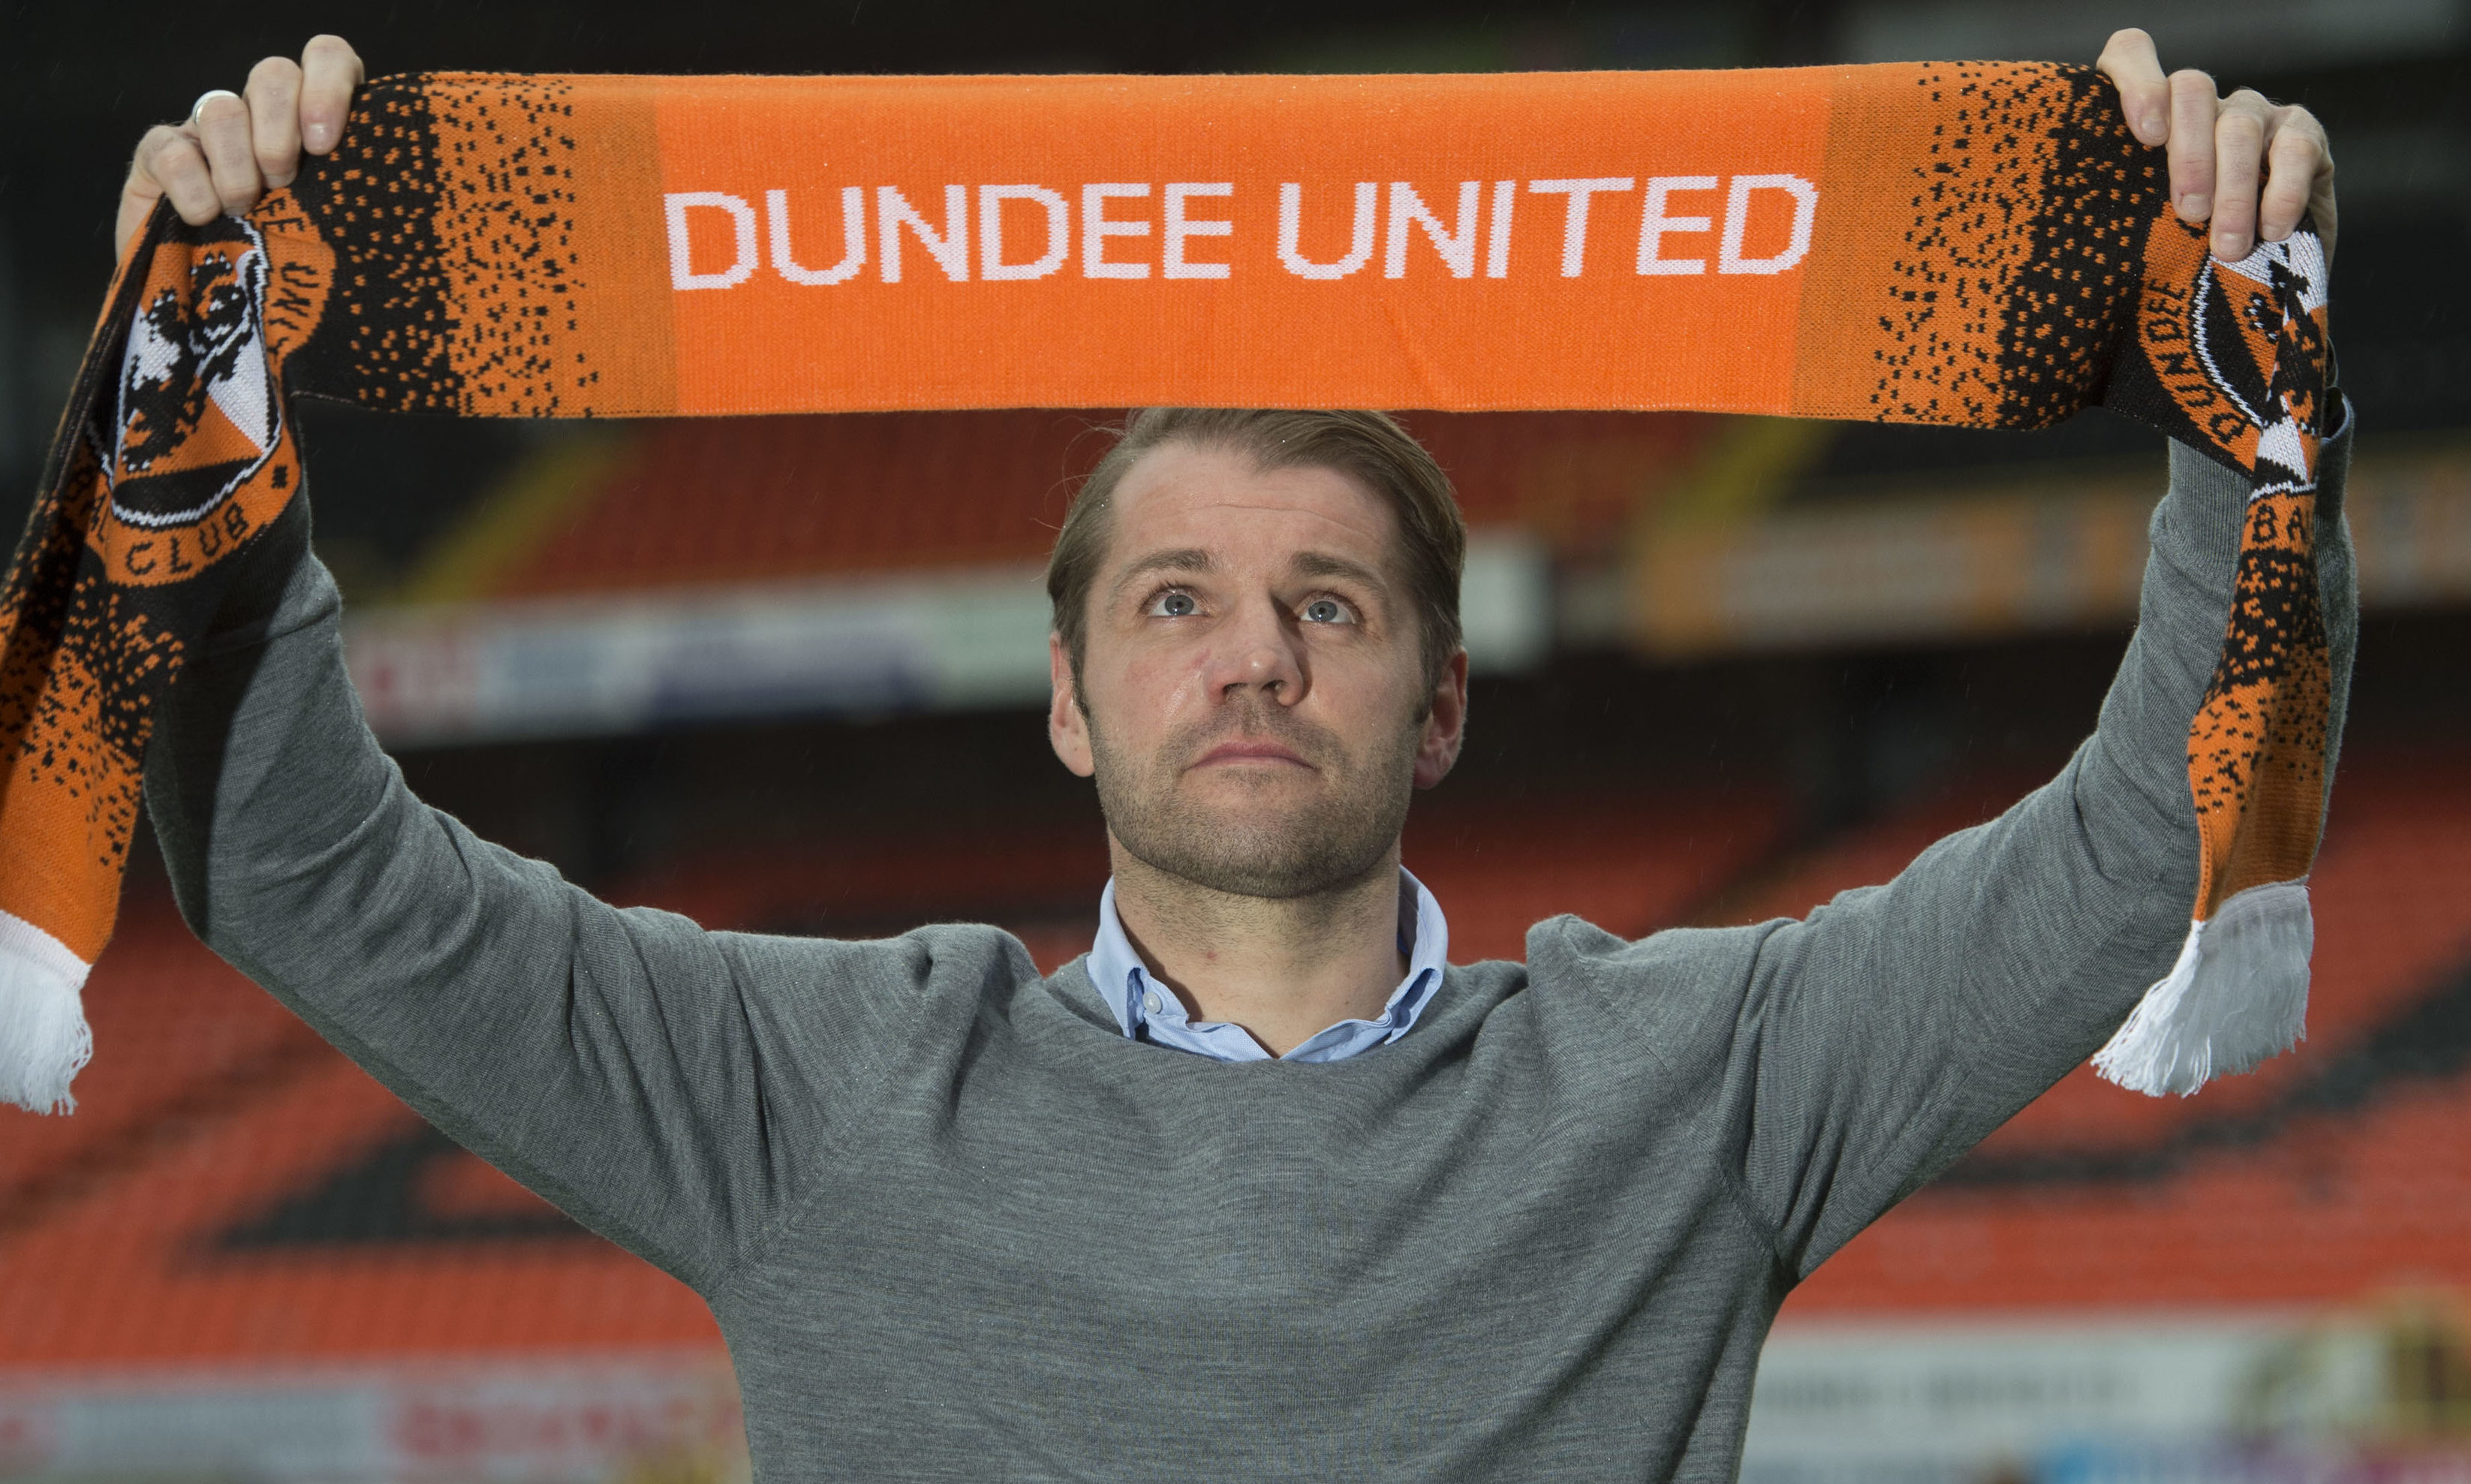 Robbie Neilson joined Dundee United in 2018.